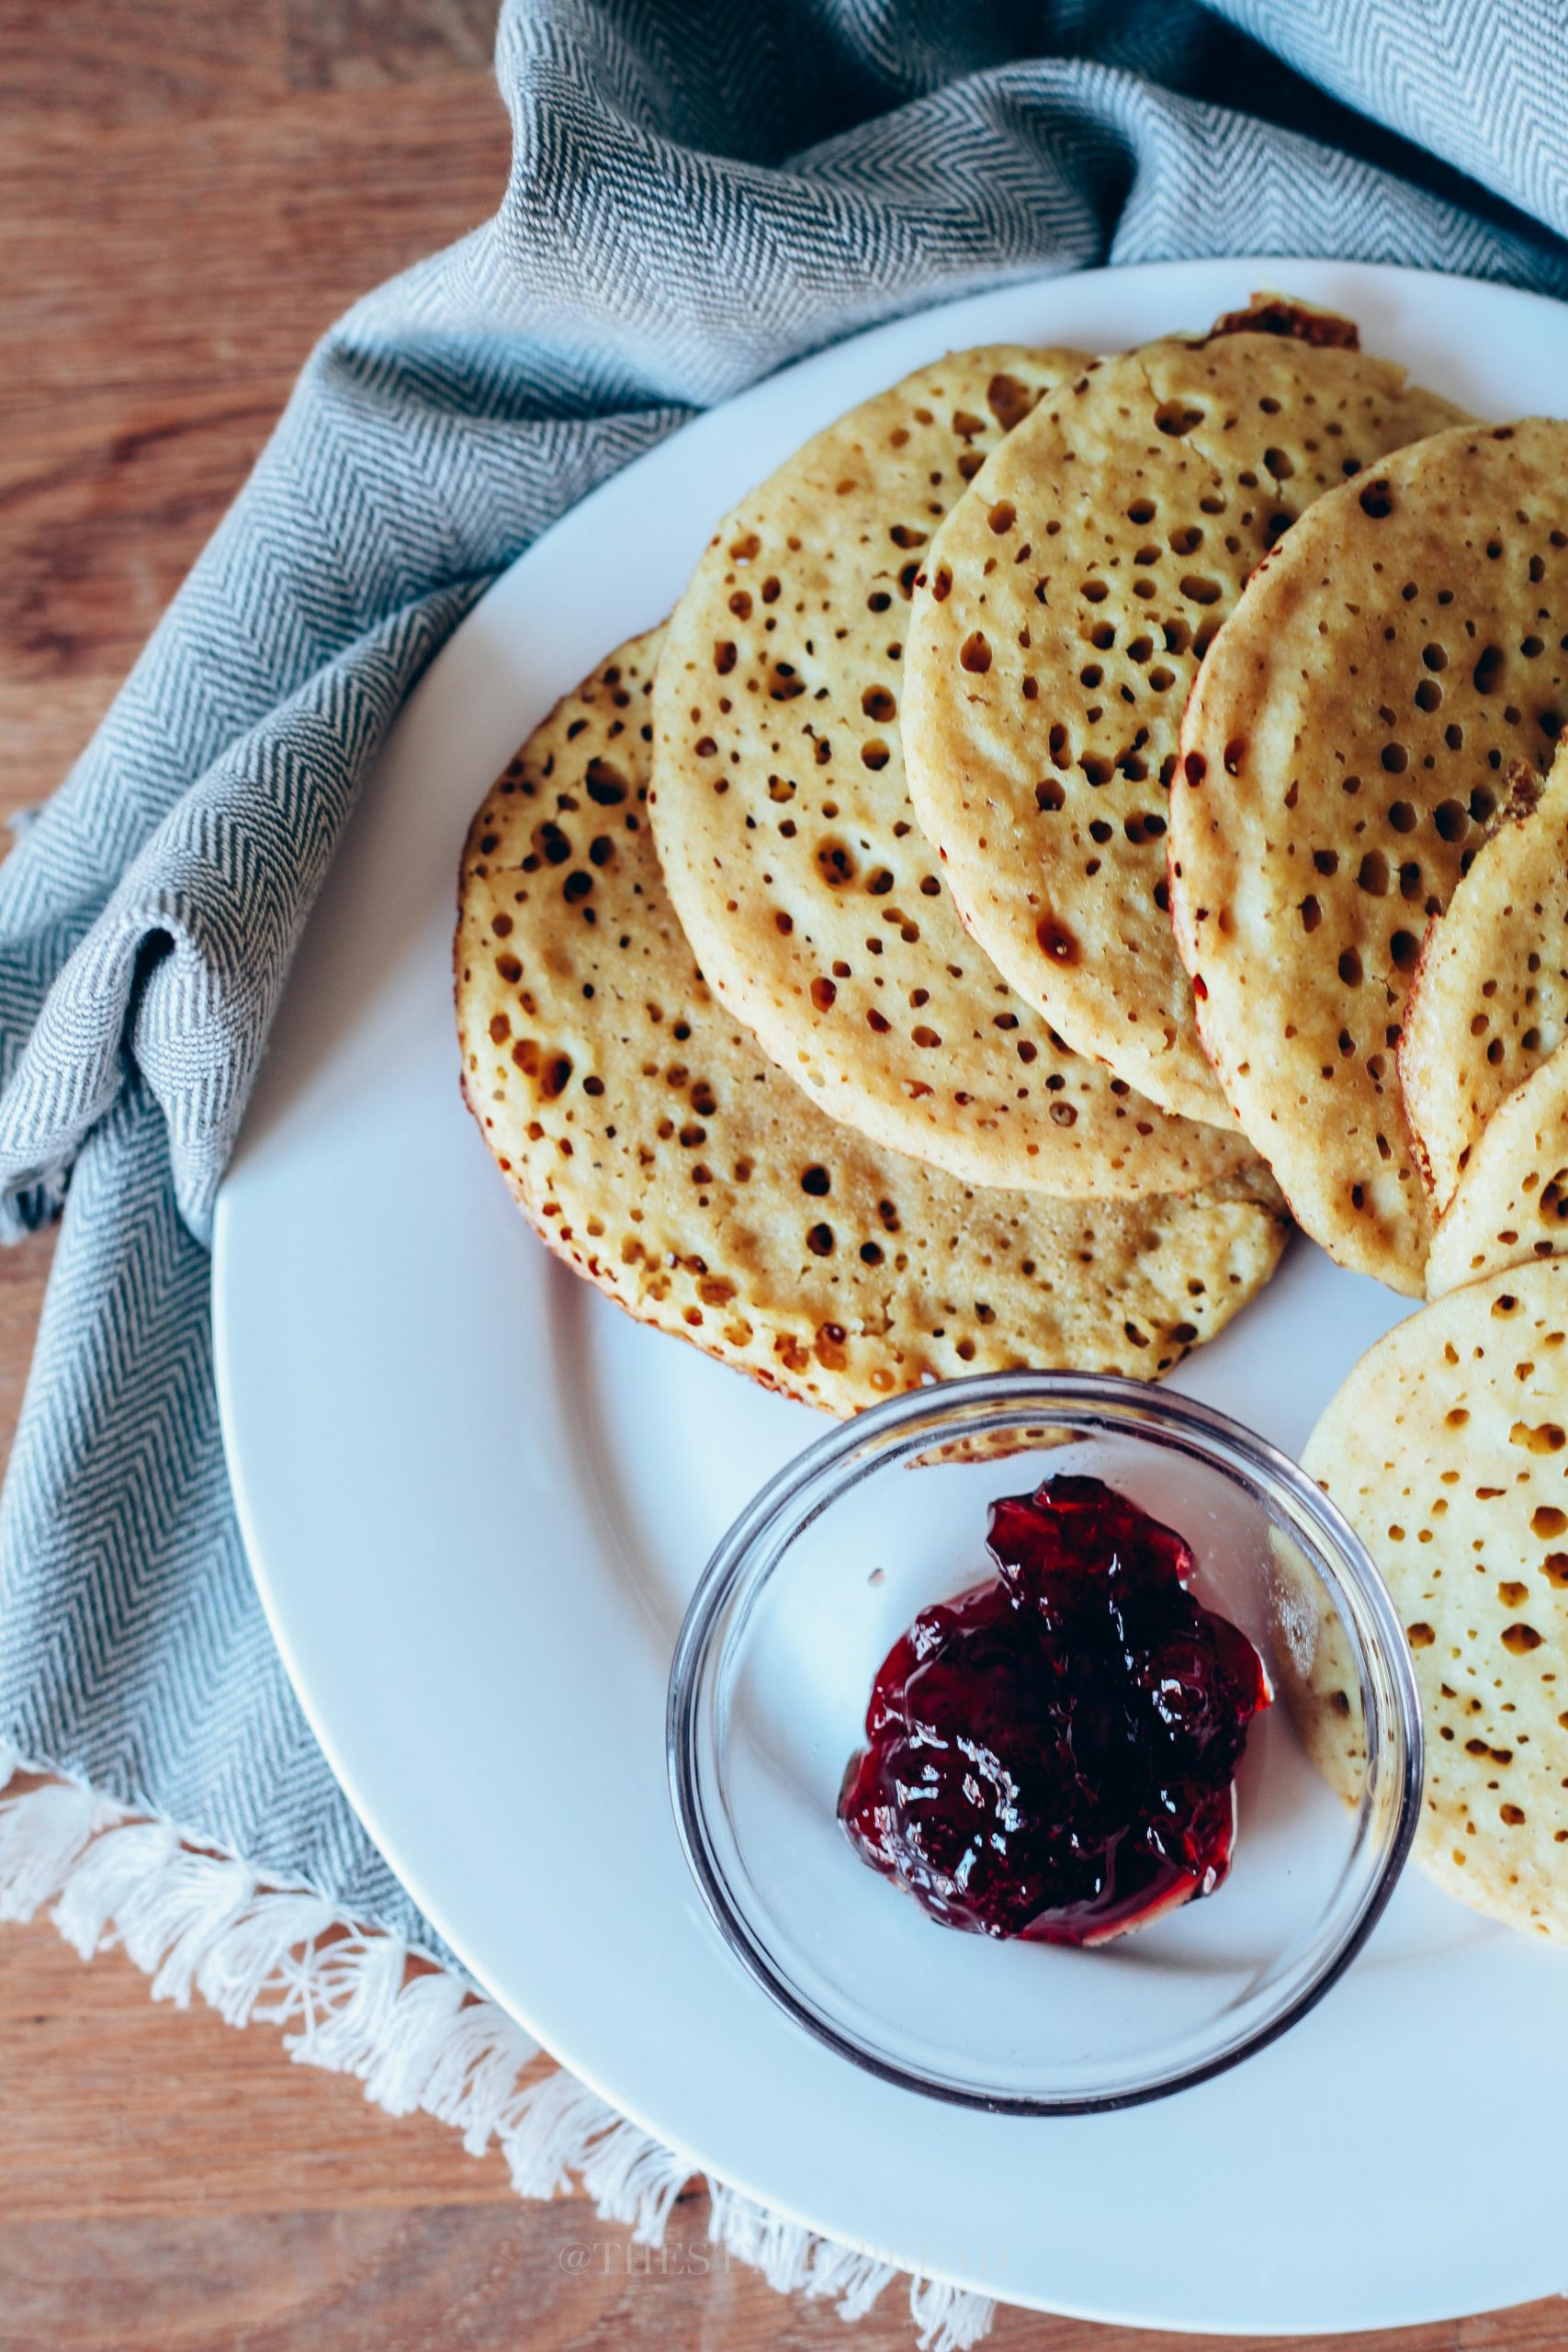 How to Make Moroccan Pancakes (Baghrir)